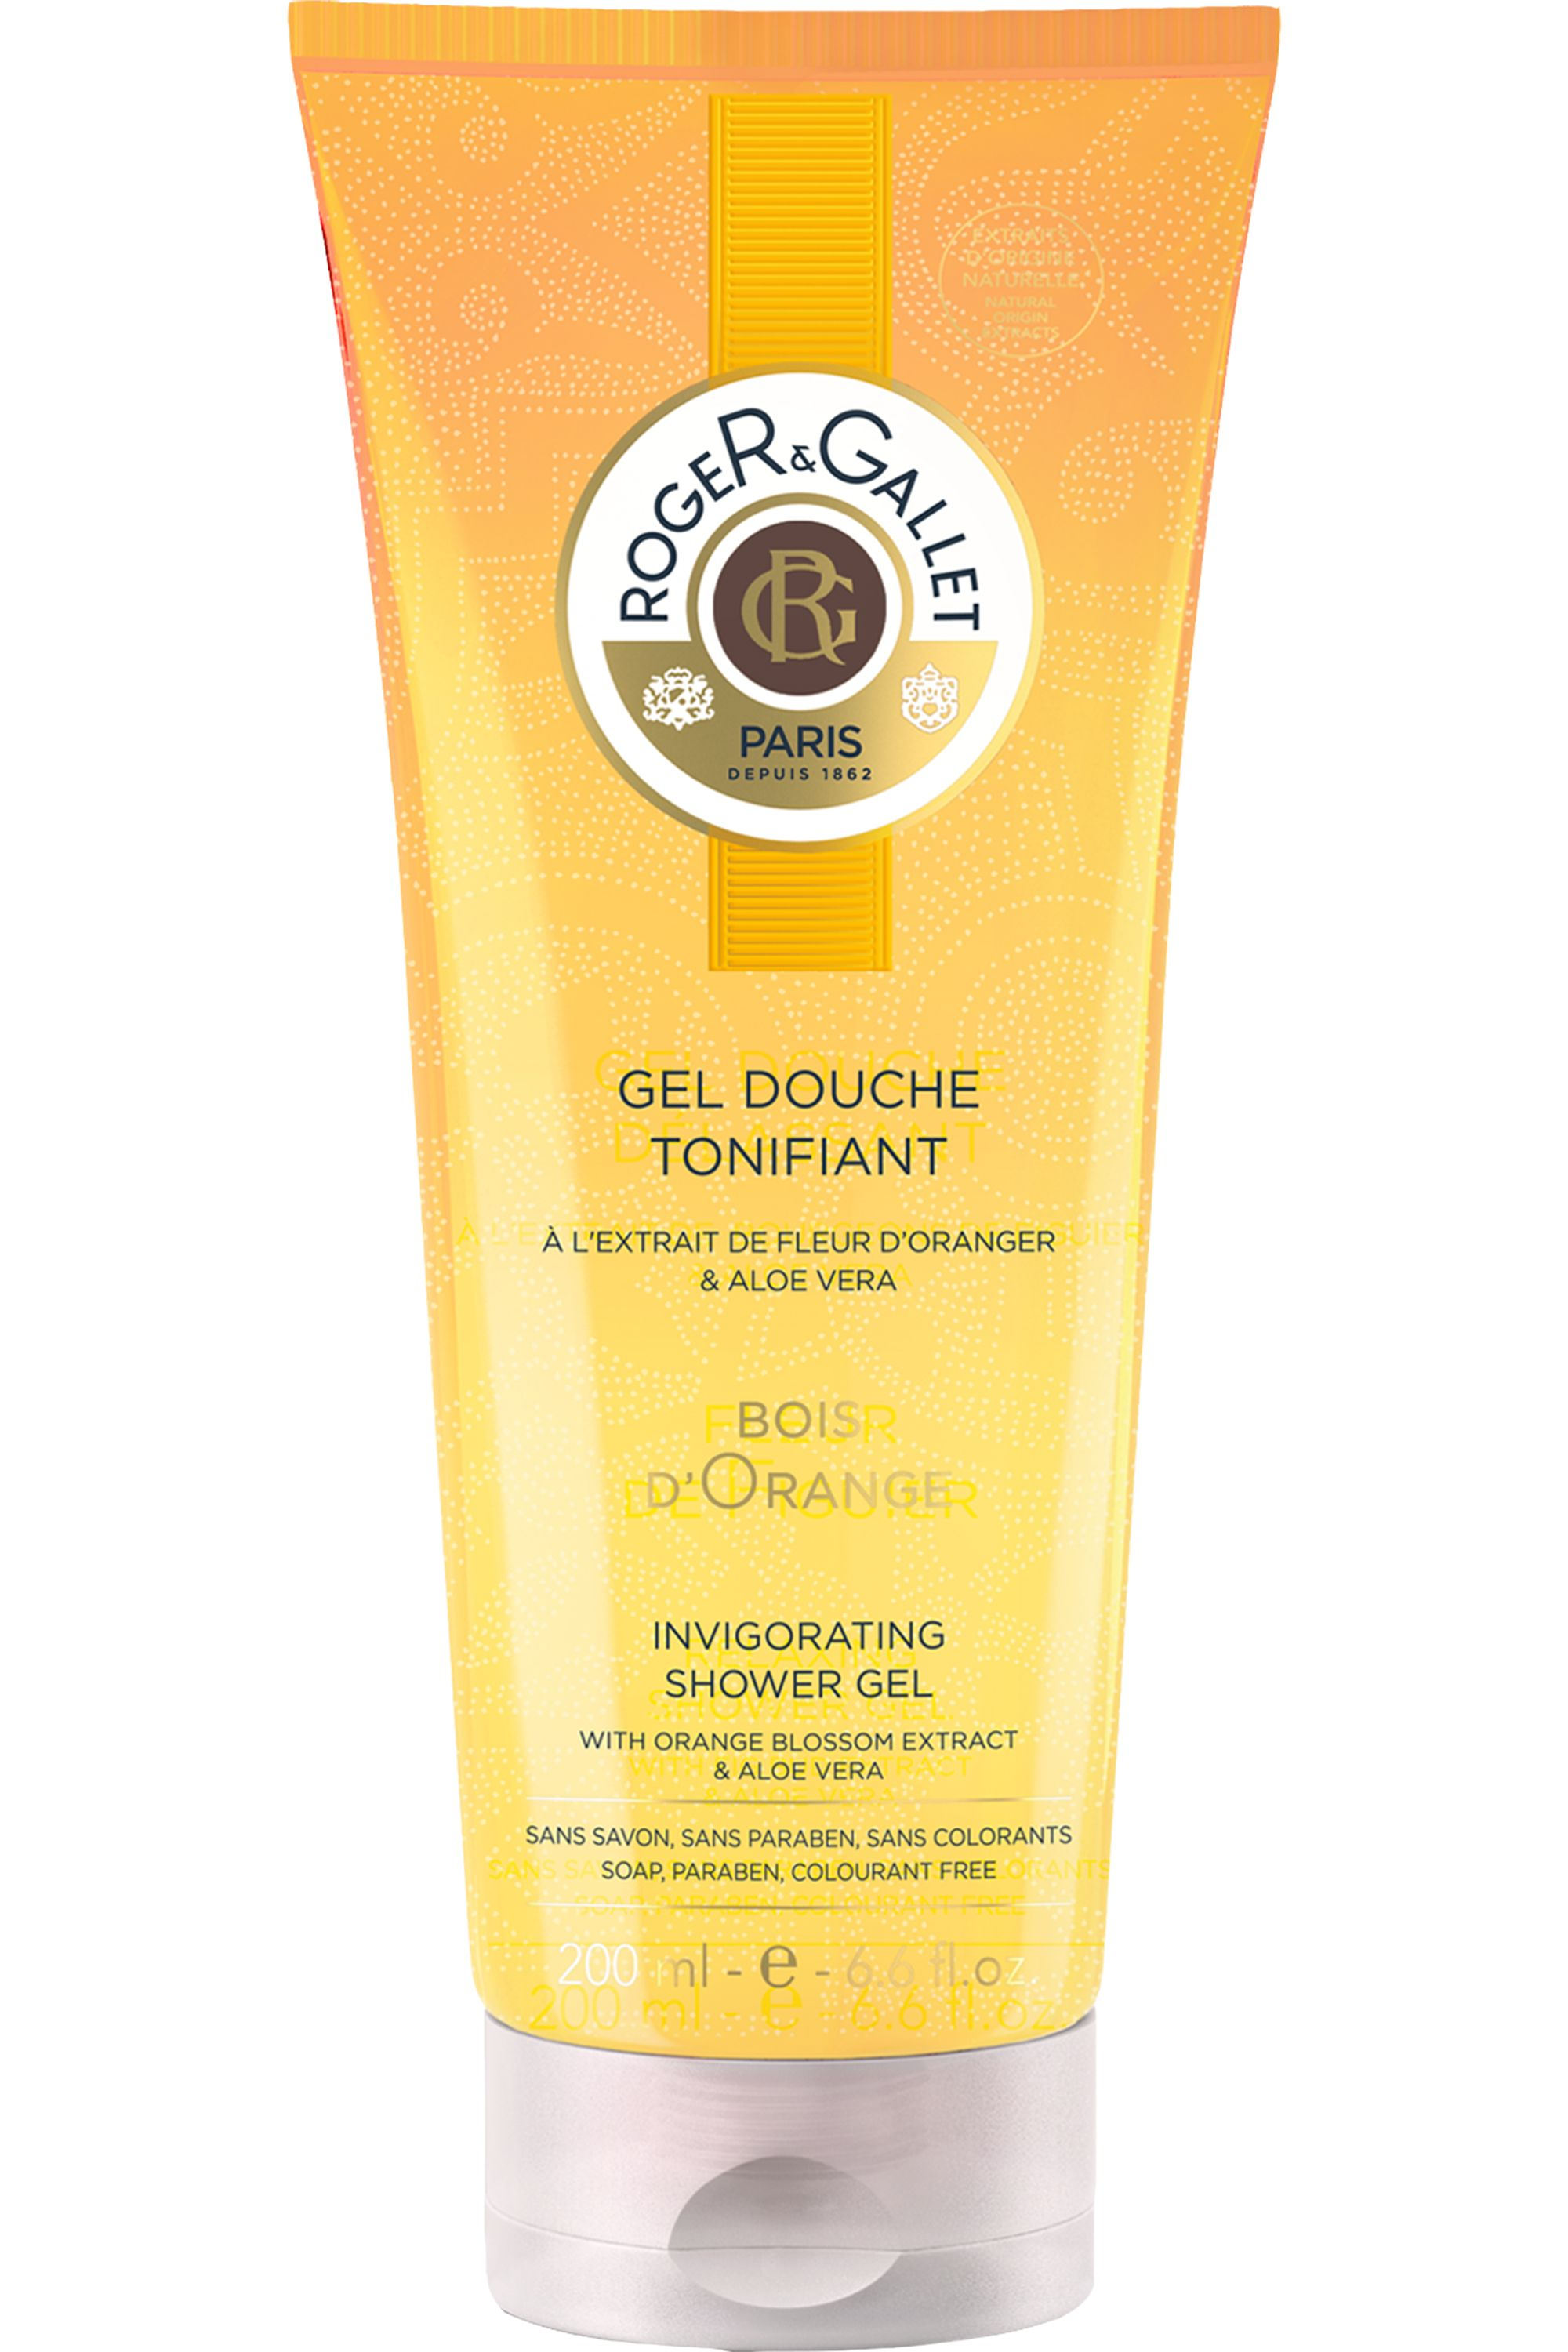 Blissim : Roger&Gallet - Bois d'Orange Gel Douche - Bois d'Orange Gel Douche